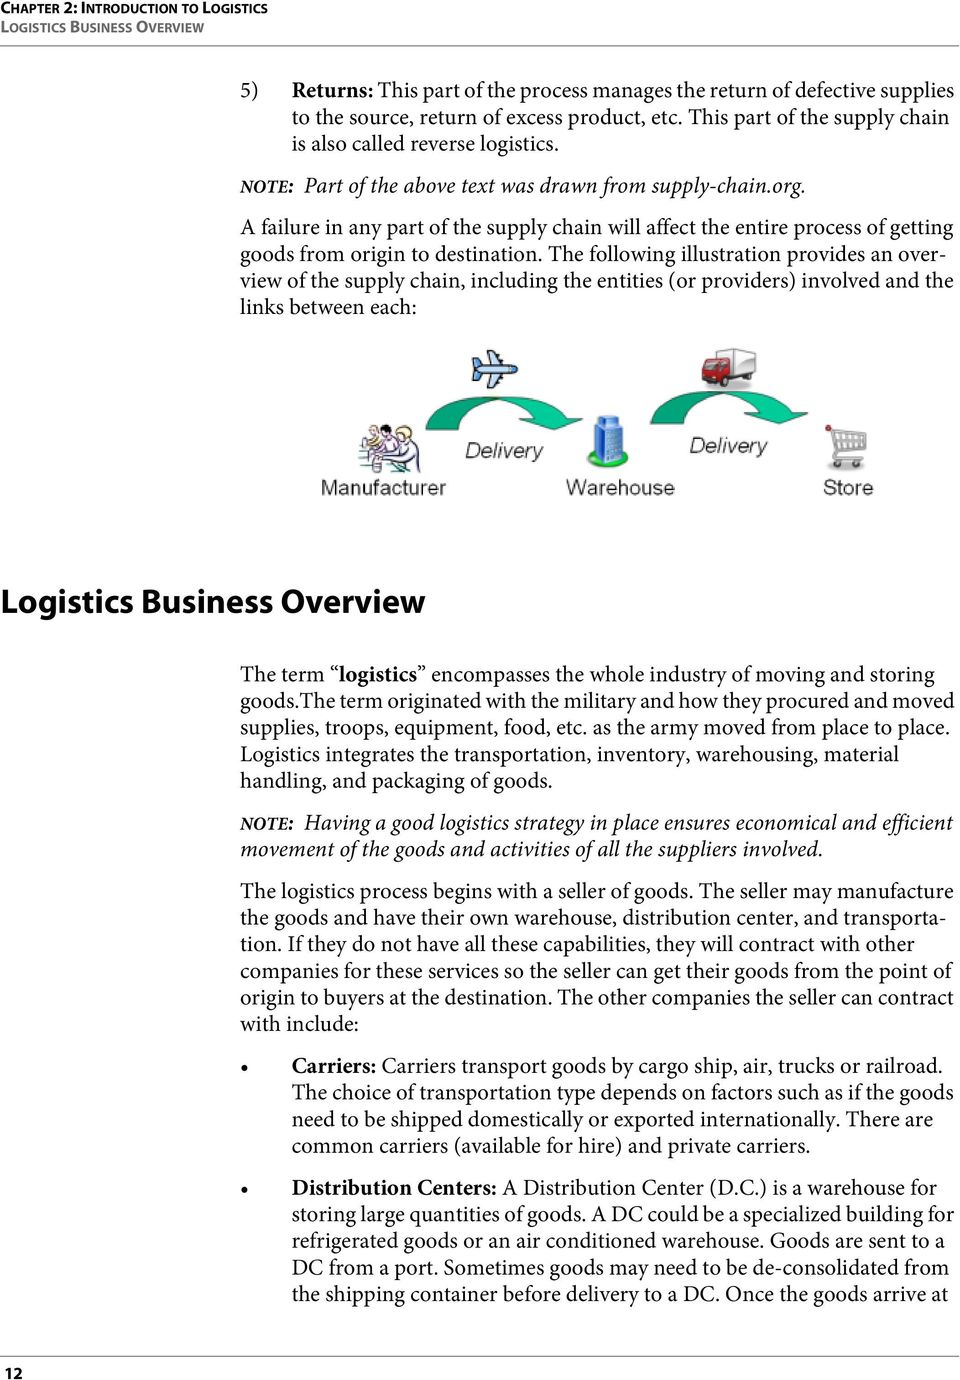 A failure in any part of the supply chain will affect the entire process of getting goods from origin to destination.